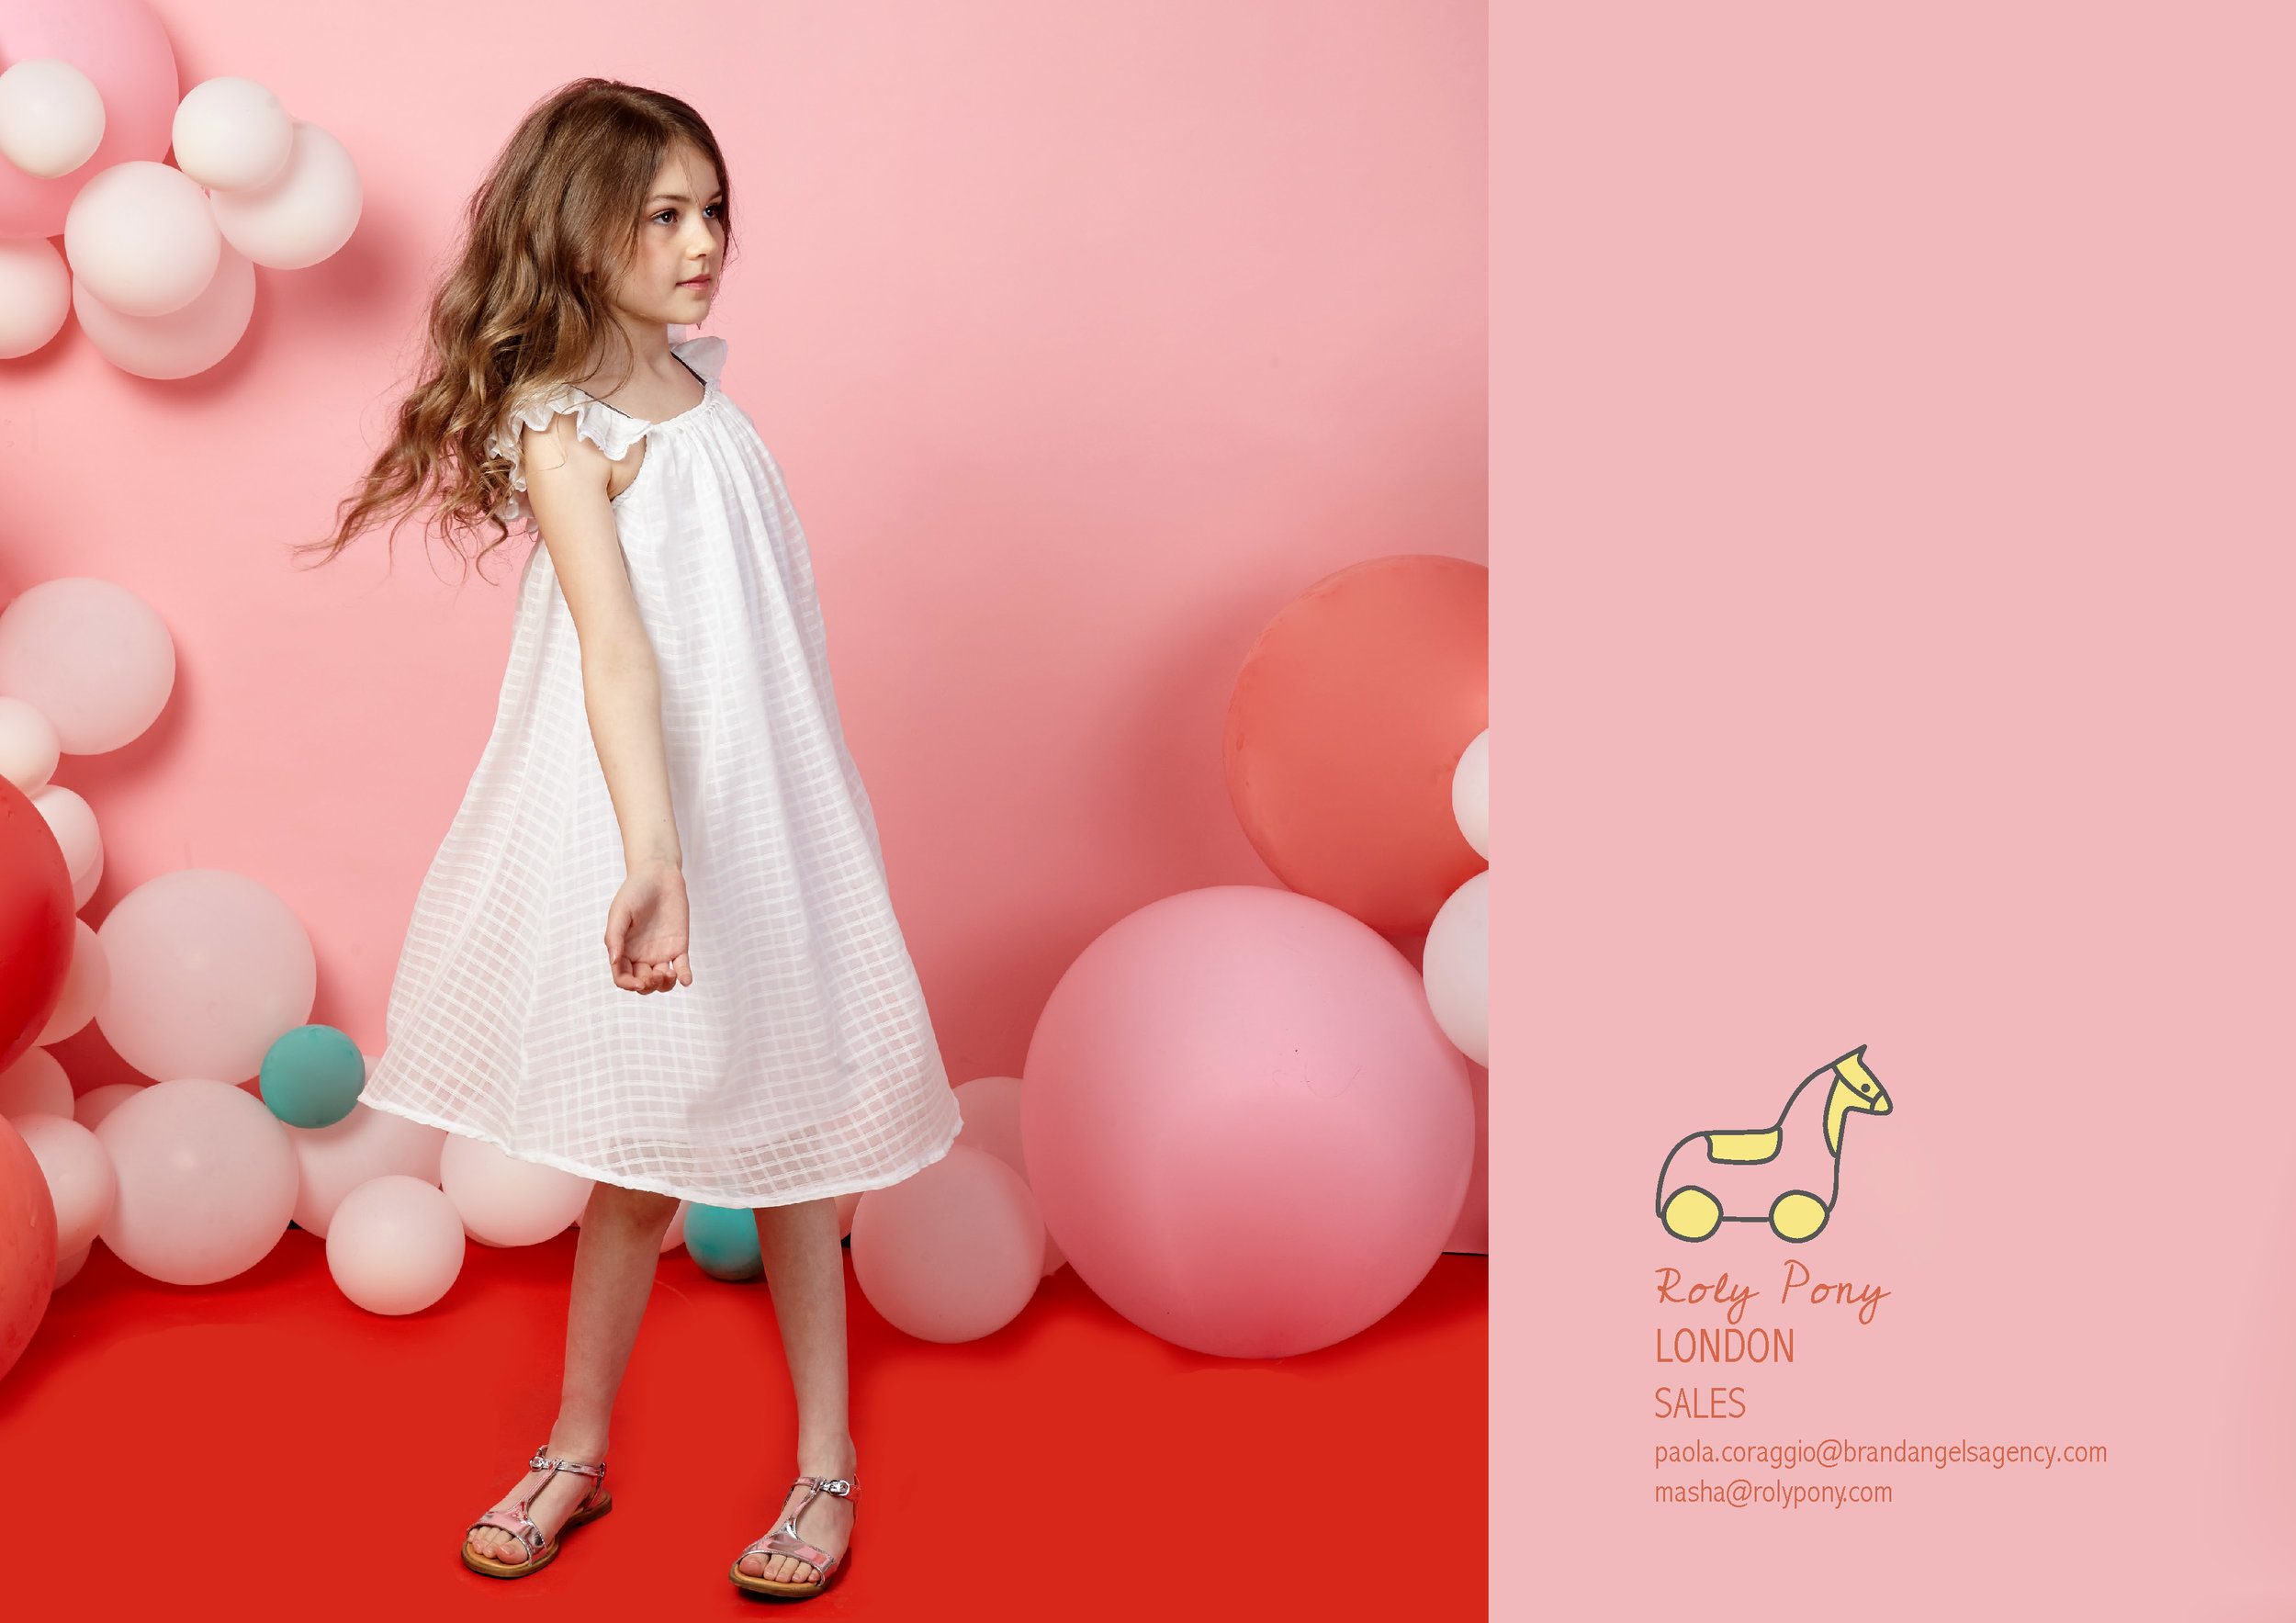 7 JULY roly pony look book SS19 JUNIOR_Page_33.jpg